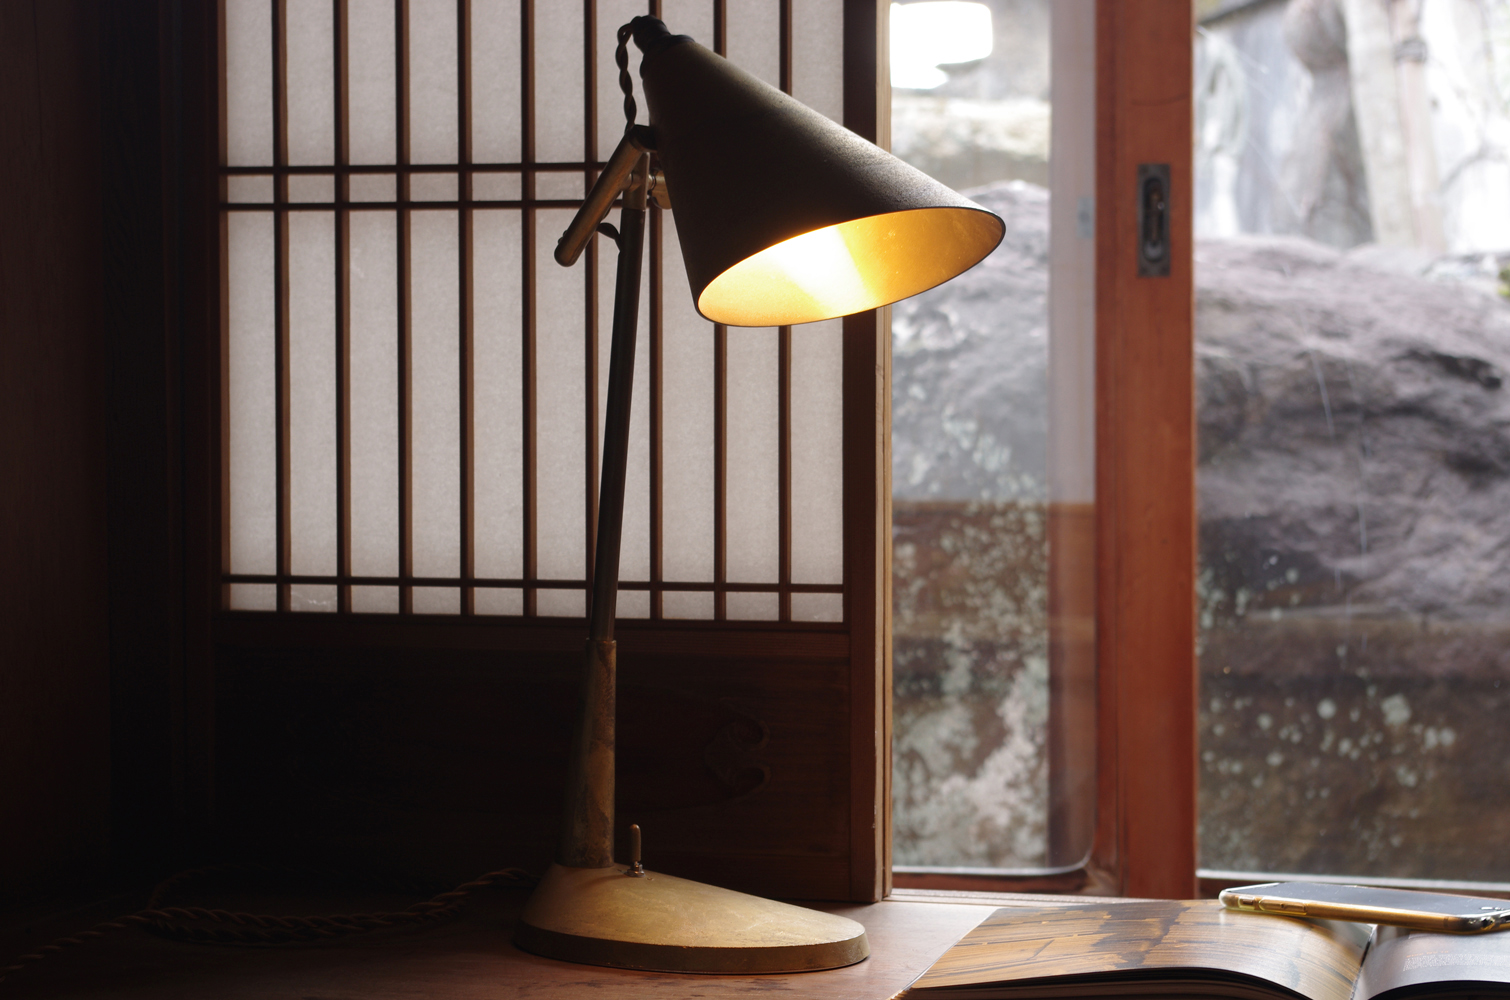 futagami-desk-lamp-6